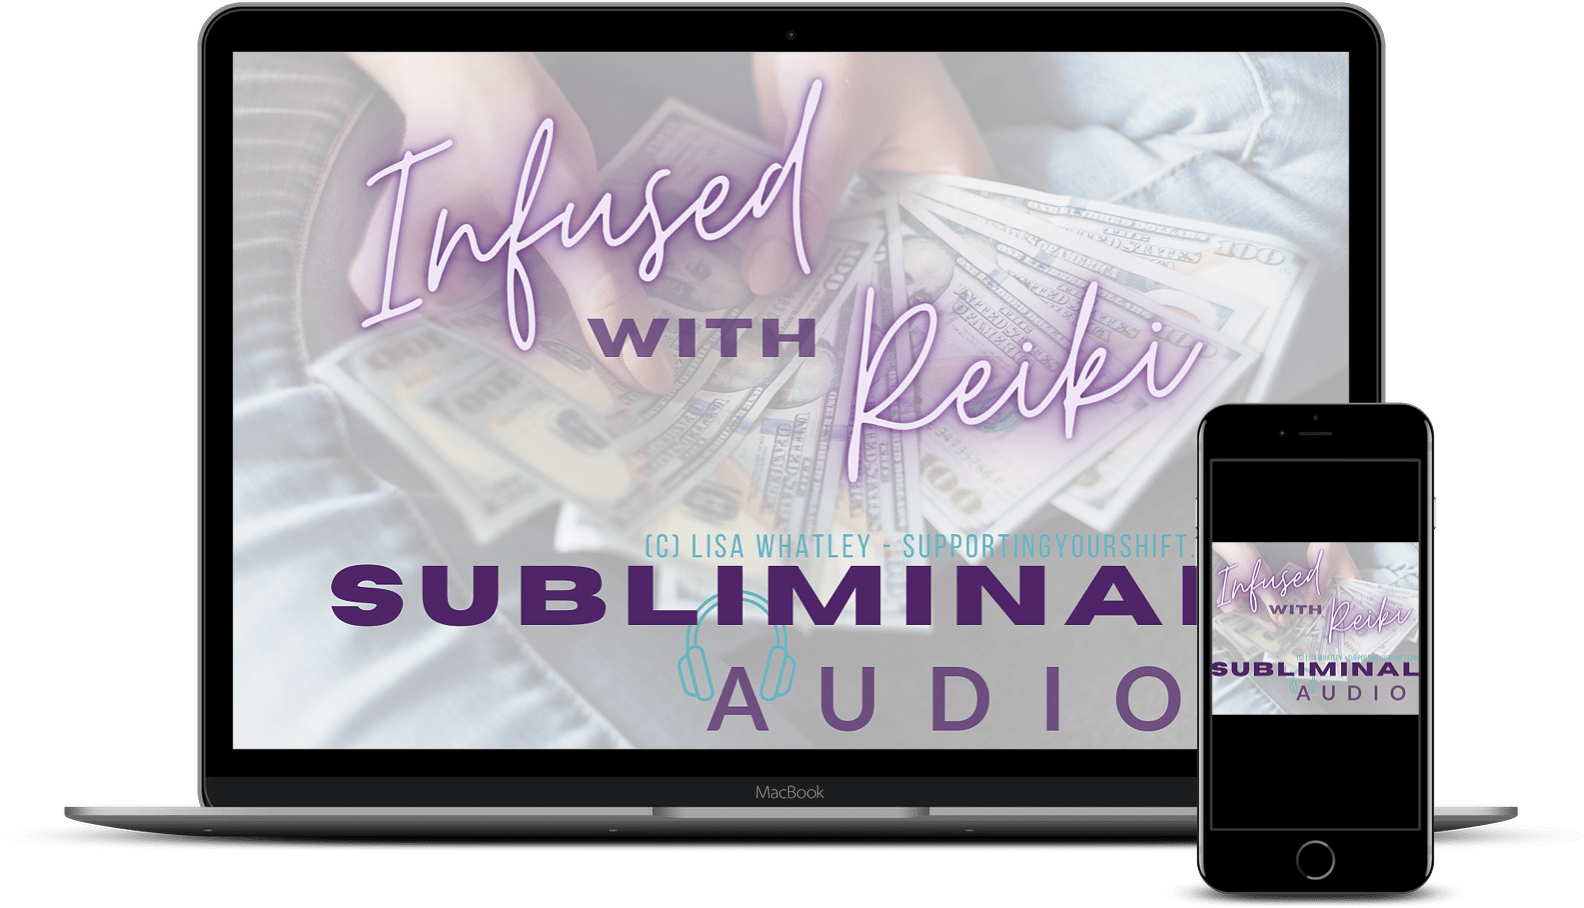 Subliminal Audio Laptop and iPhone